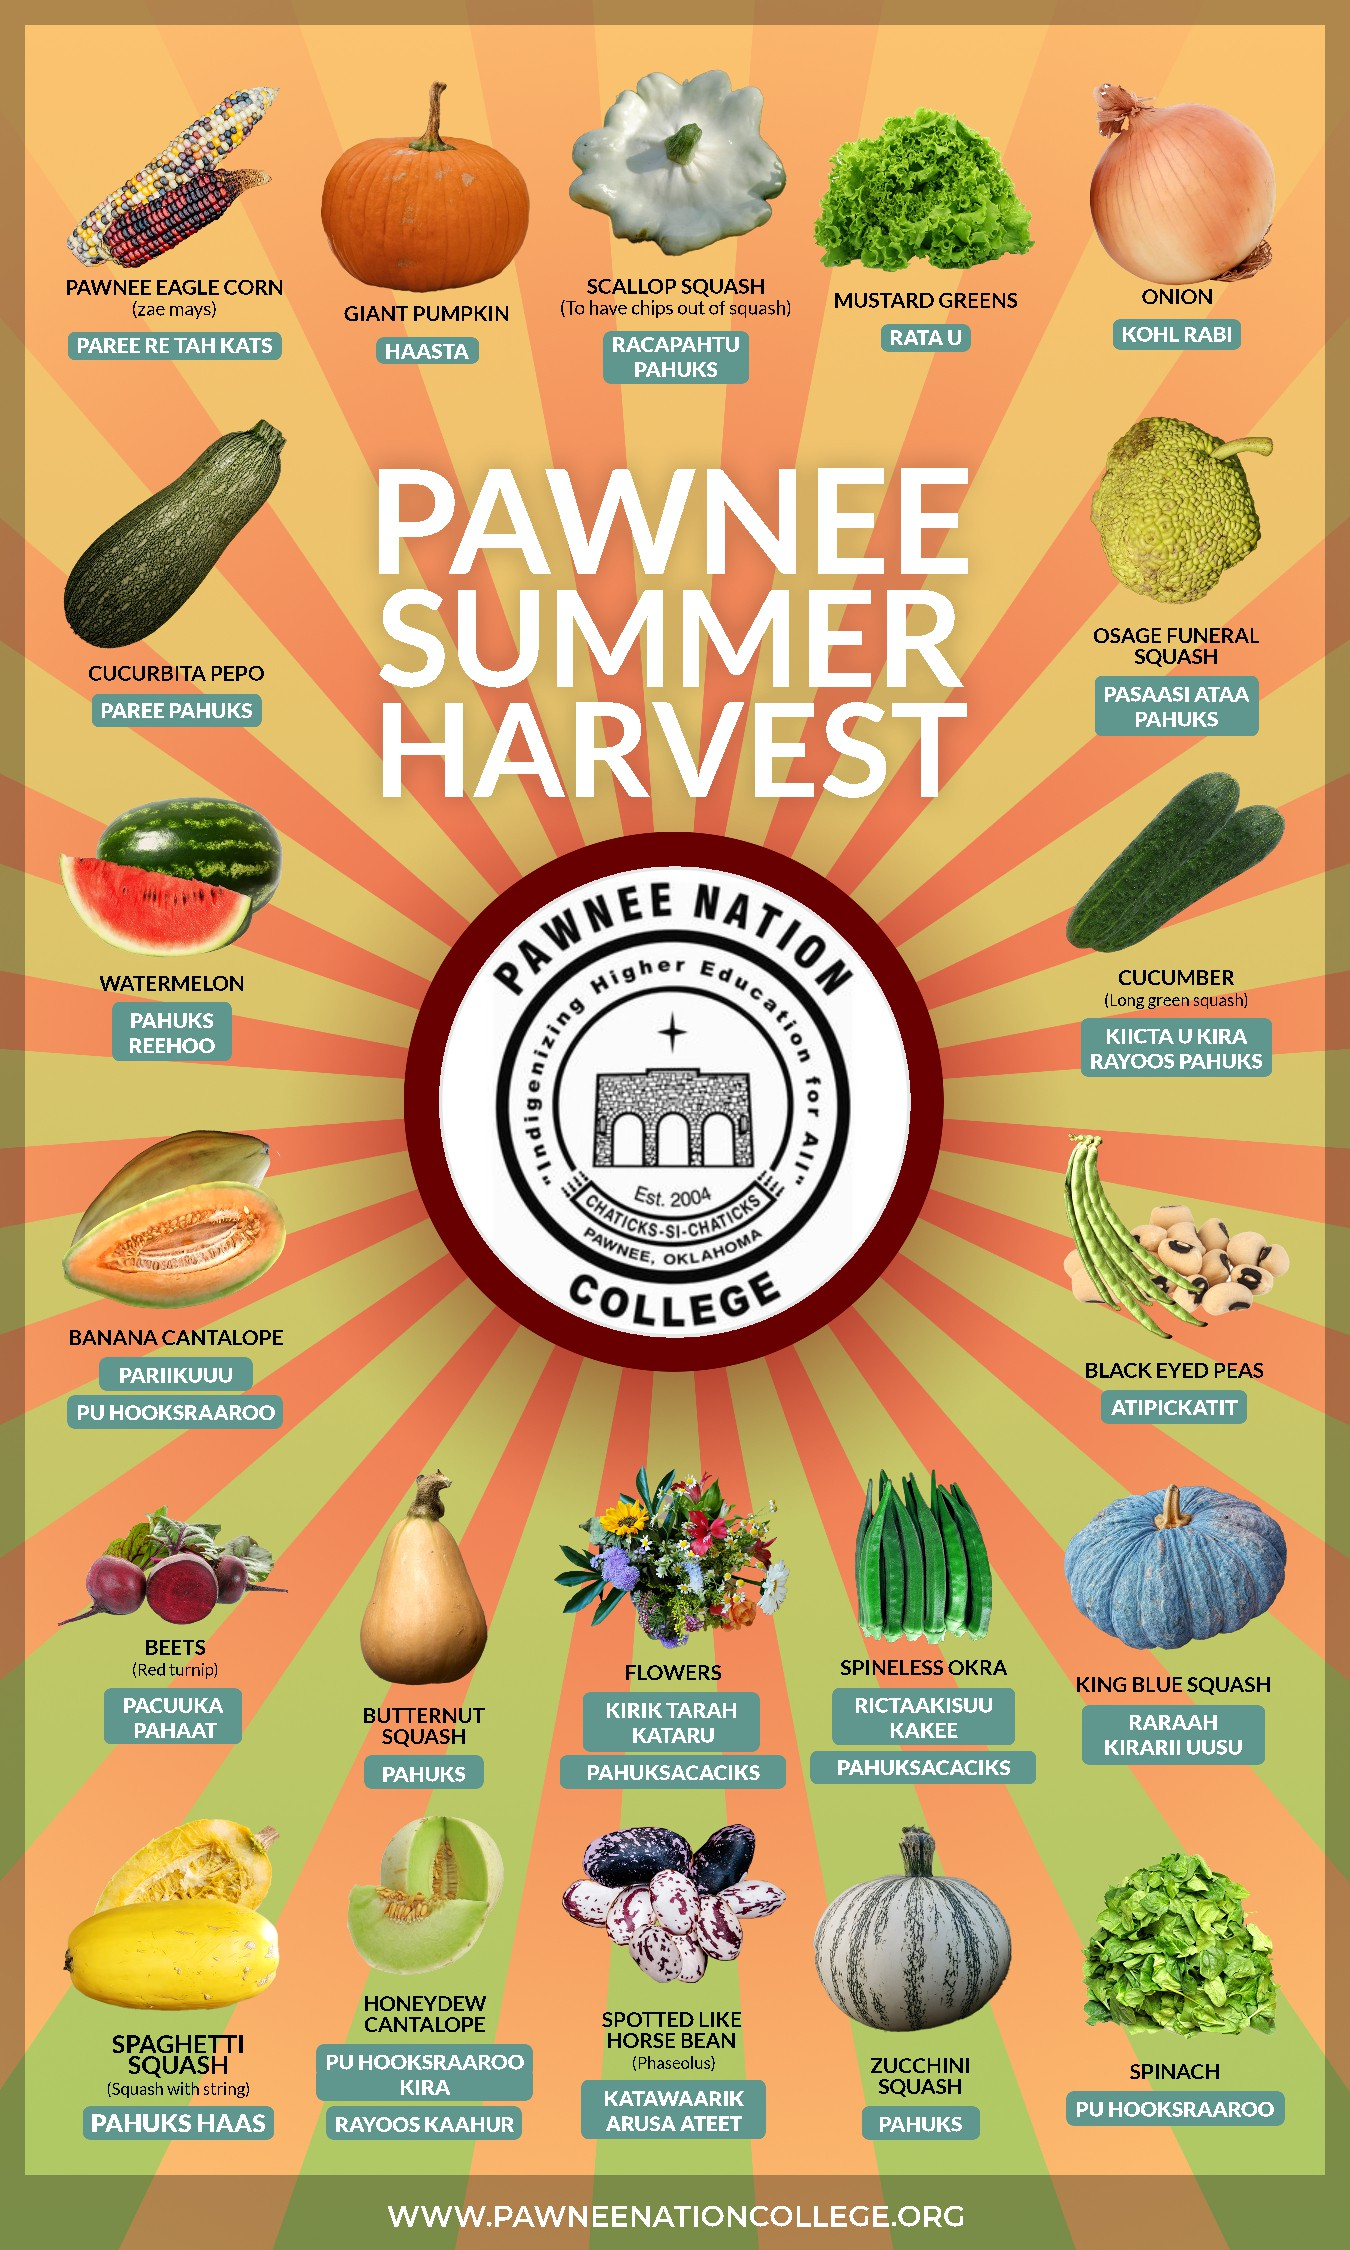 HEY! The Pawnee Natives need your help - expert needed for Pawnee-English Guide